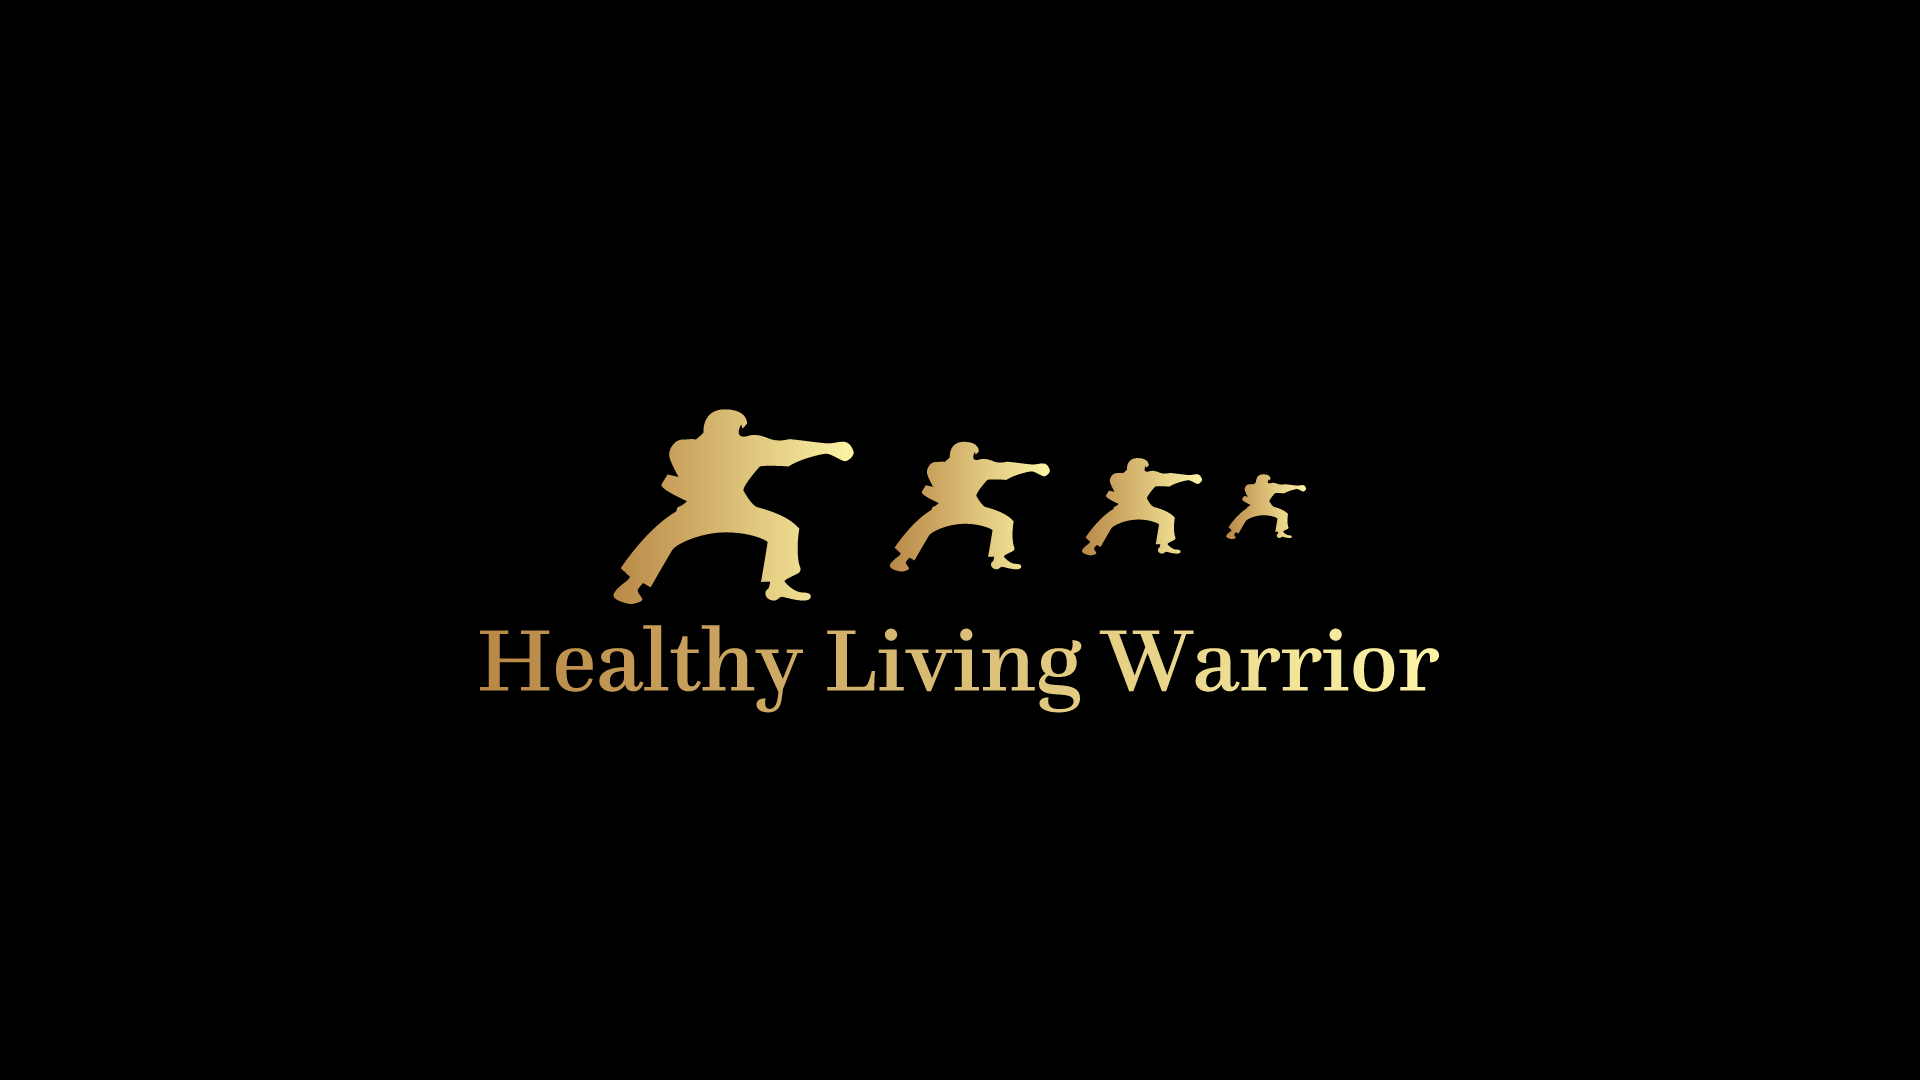 Healthy Living Warrior